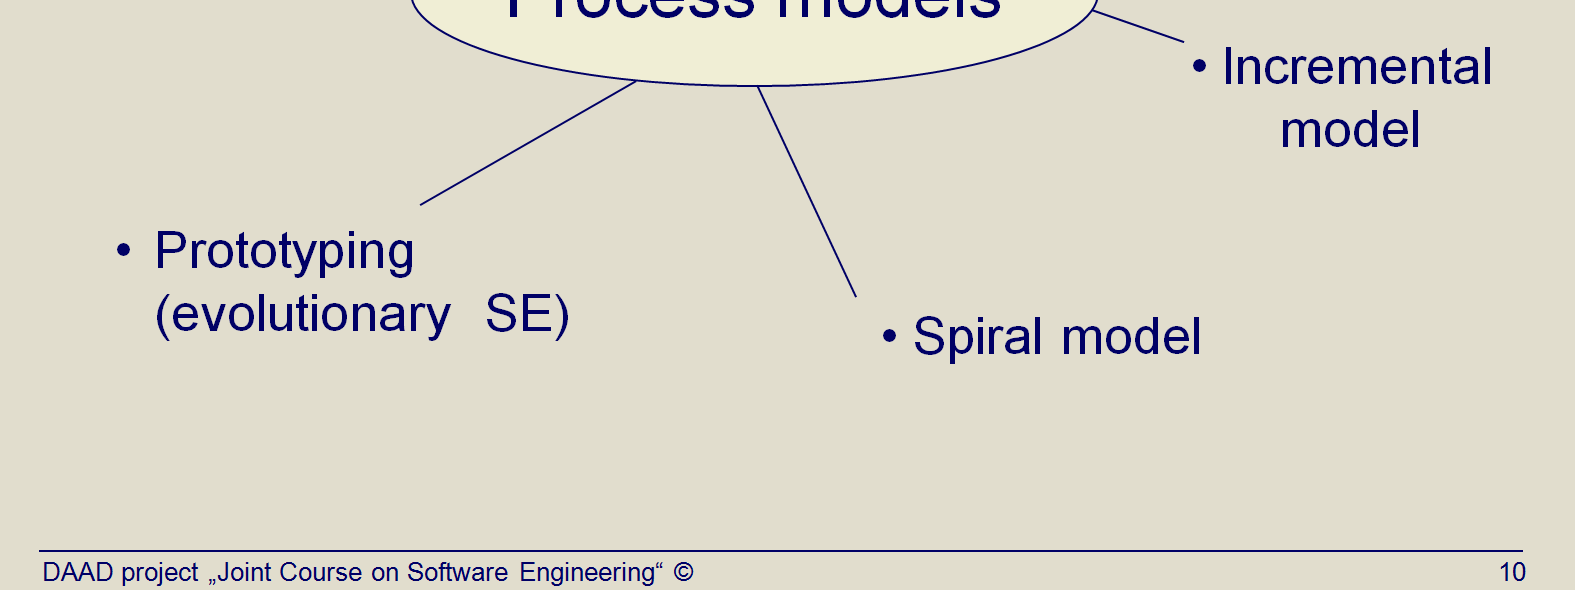 Title: Most familiar process models: Overview (Topic03 Slide 10). This is a list of well-known software process models.